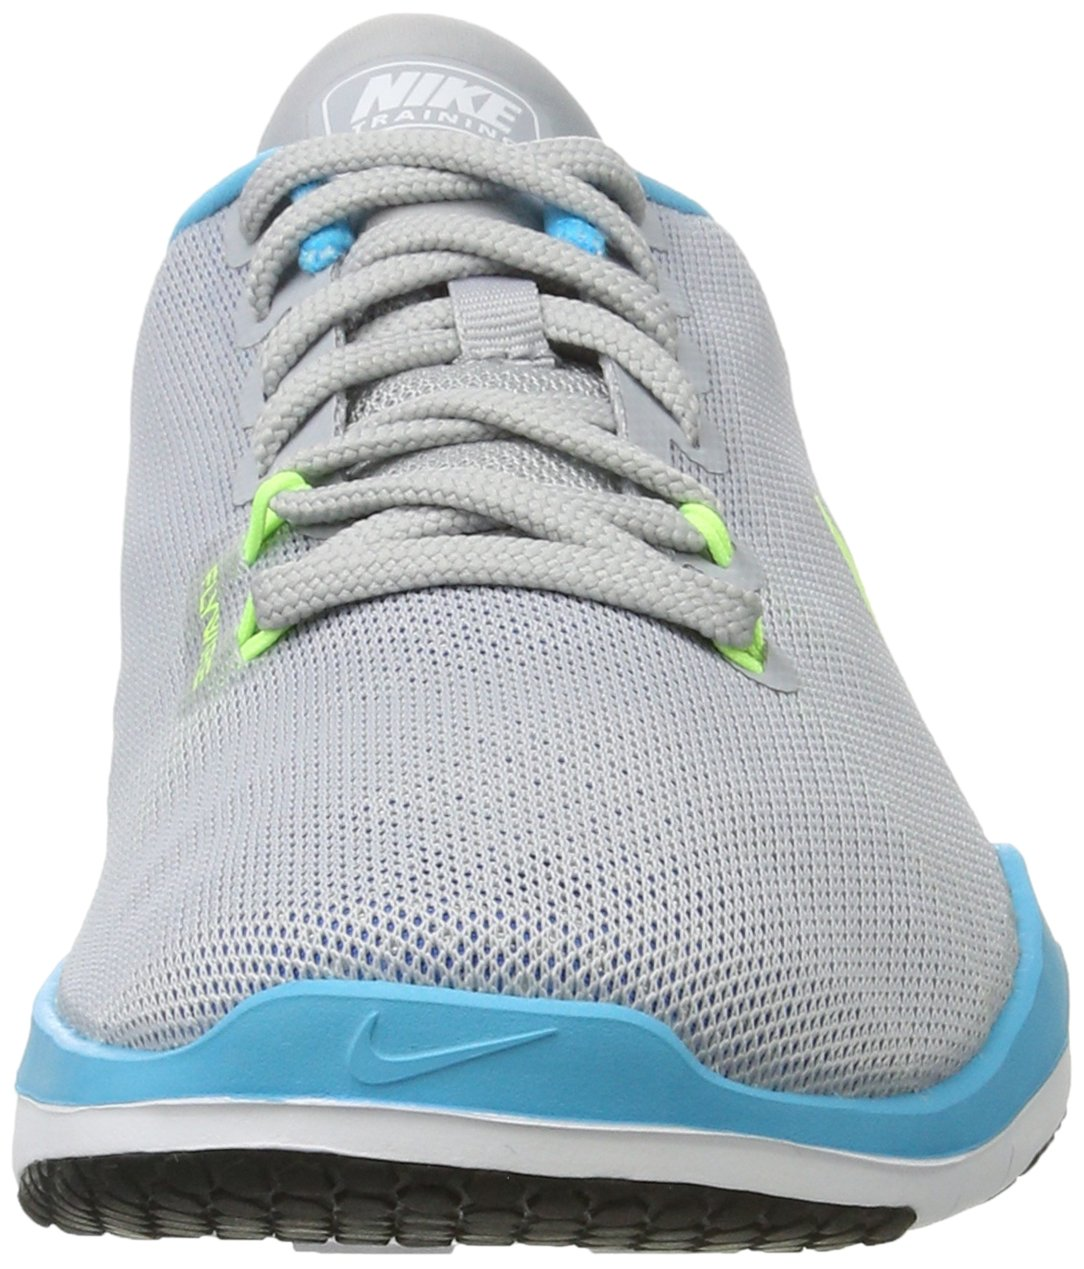 NIKE Women's Flex Supreme TR 5 Cross Training Shoe B01MAV13P6 9.5 B(M) US|Wolf Grey/Ghost Green/Chlorine Blue